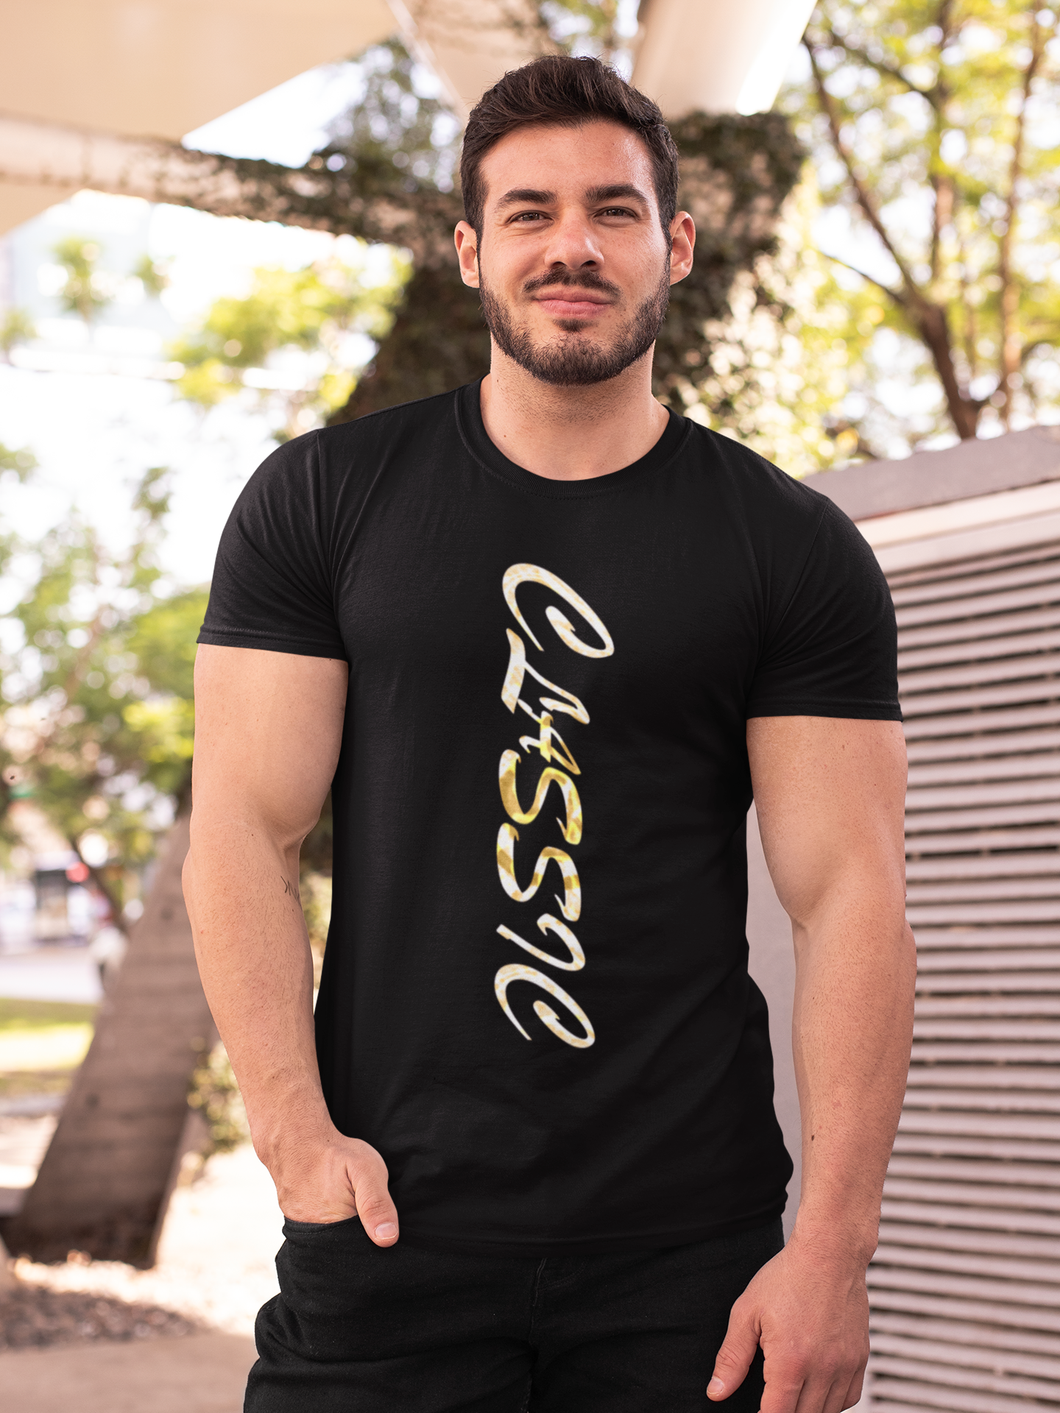 Classic Gold - Men's Half Sleeve T-Shirt - Black